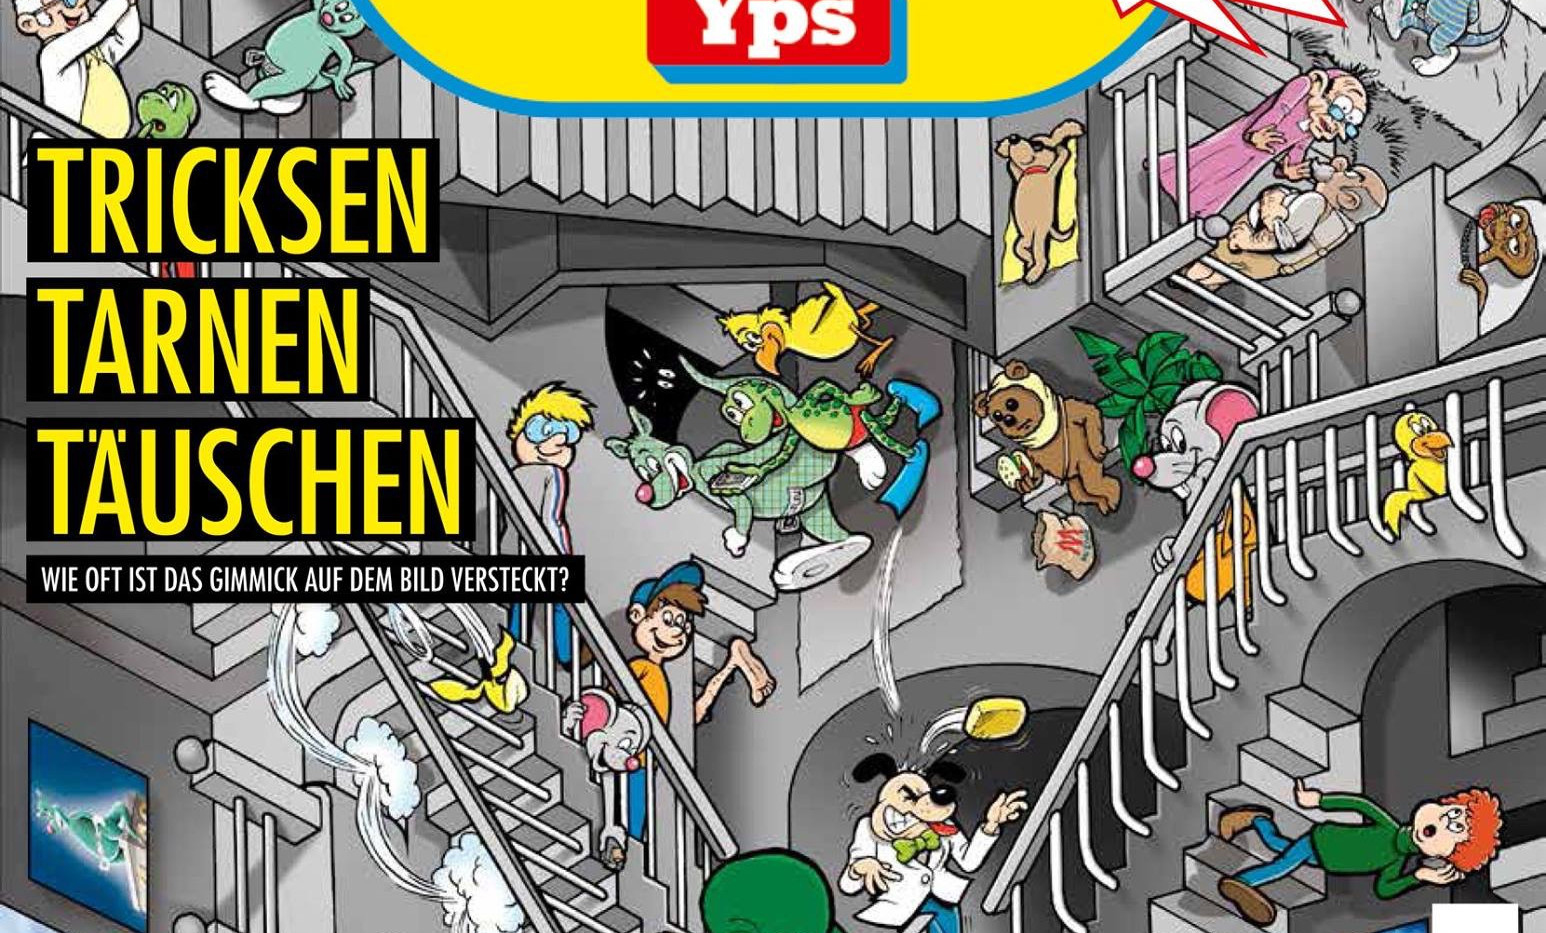 YPS COVER 1281.jpg